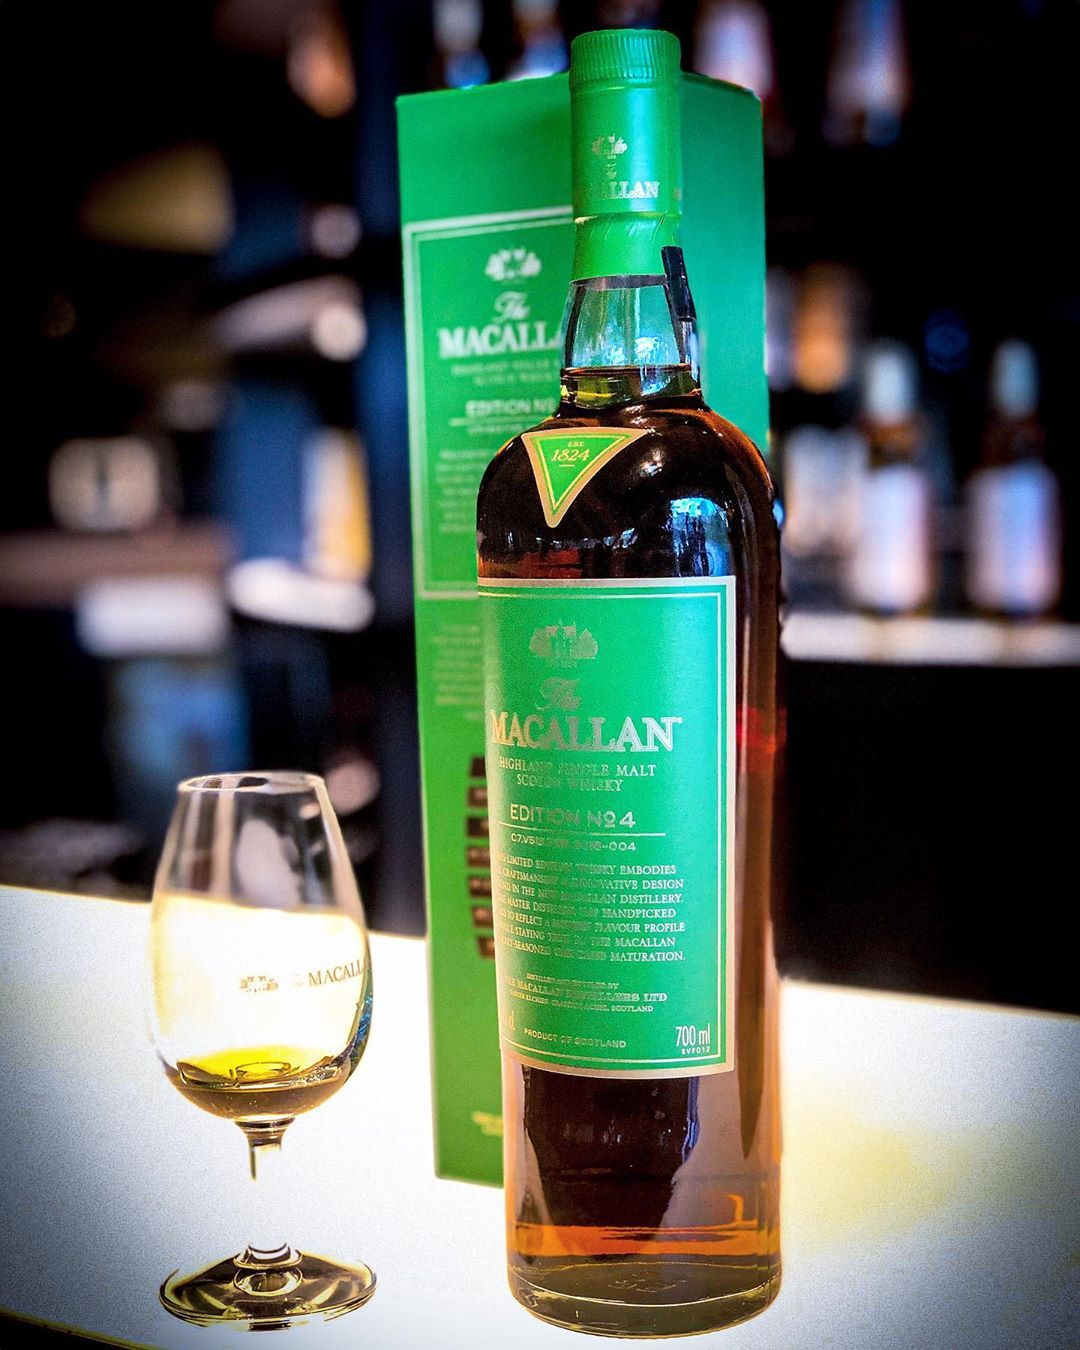 The Macallan Edition No 4 Don T Mind If We Do This Was The First Dram We Enjoyed At The New Macallan Distillery A Little Someth Distillery Speyside Scottish